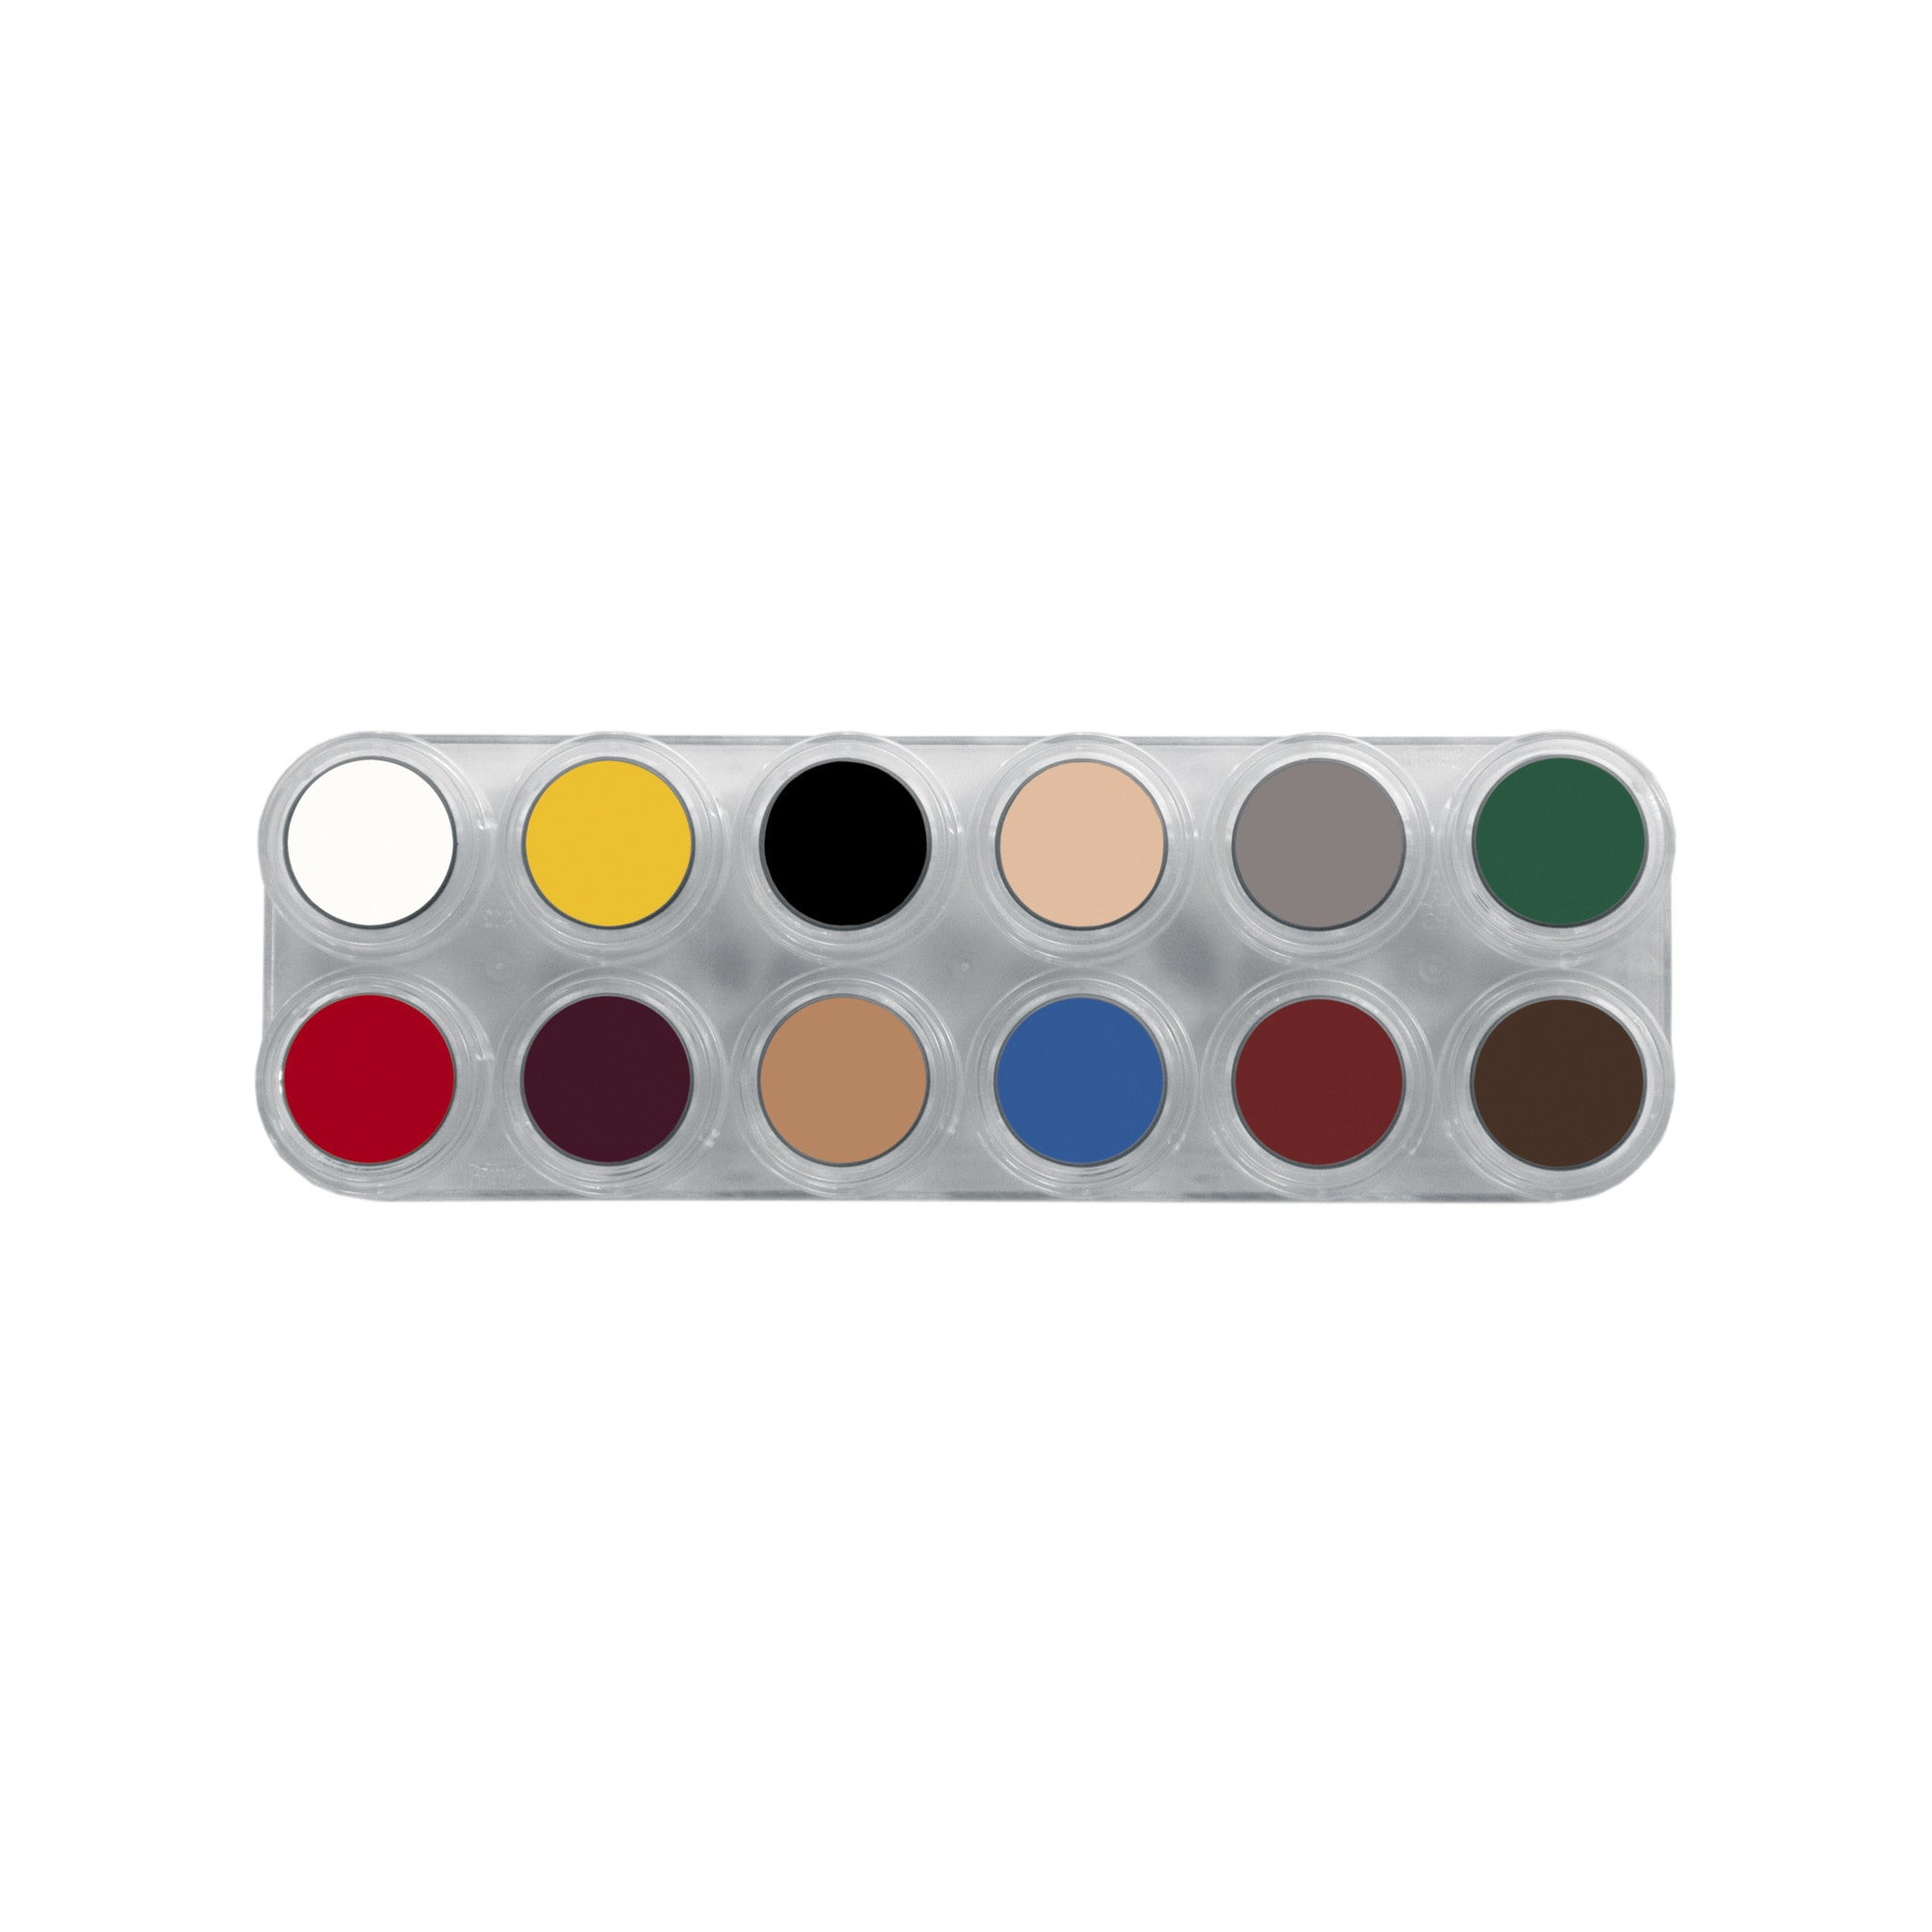 Grimas Pure Crème 12 Colour Face Paint  Palette - B - Red Carpet FX - Professional Makeup